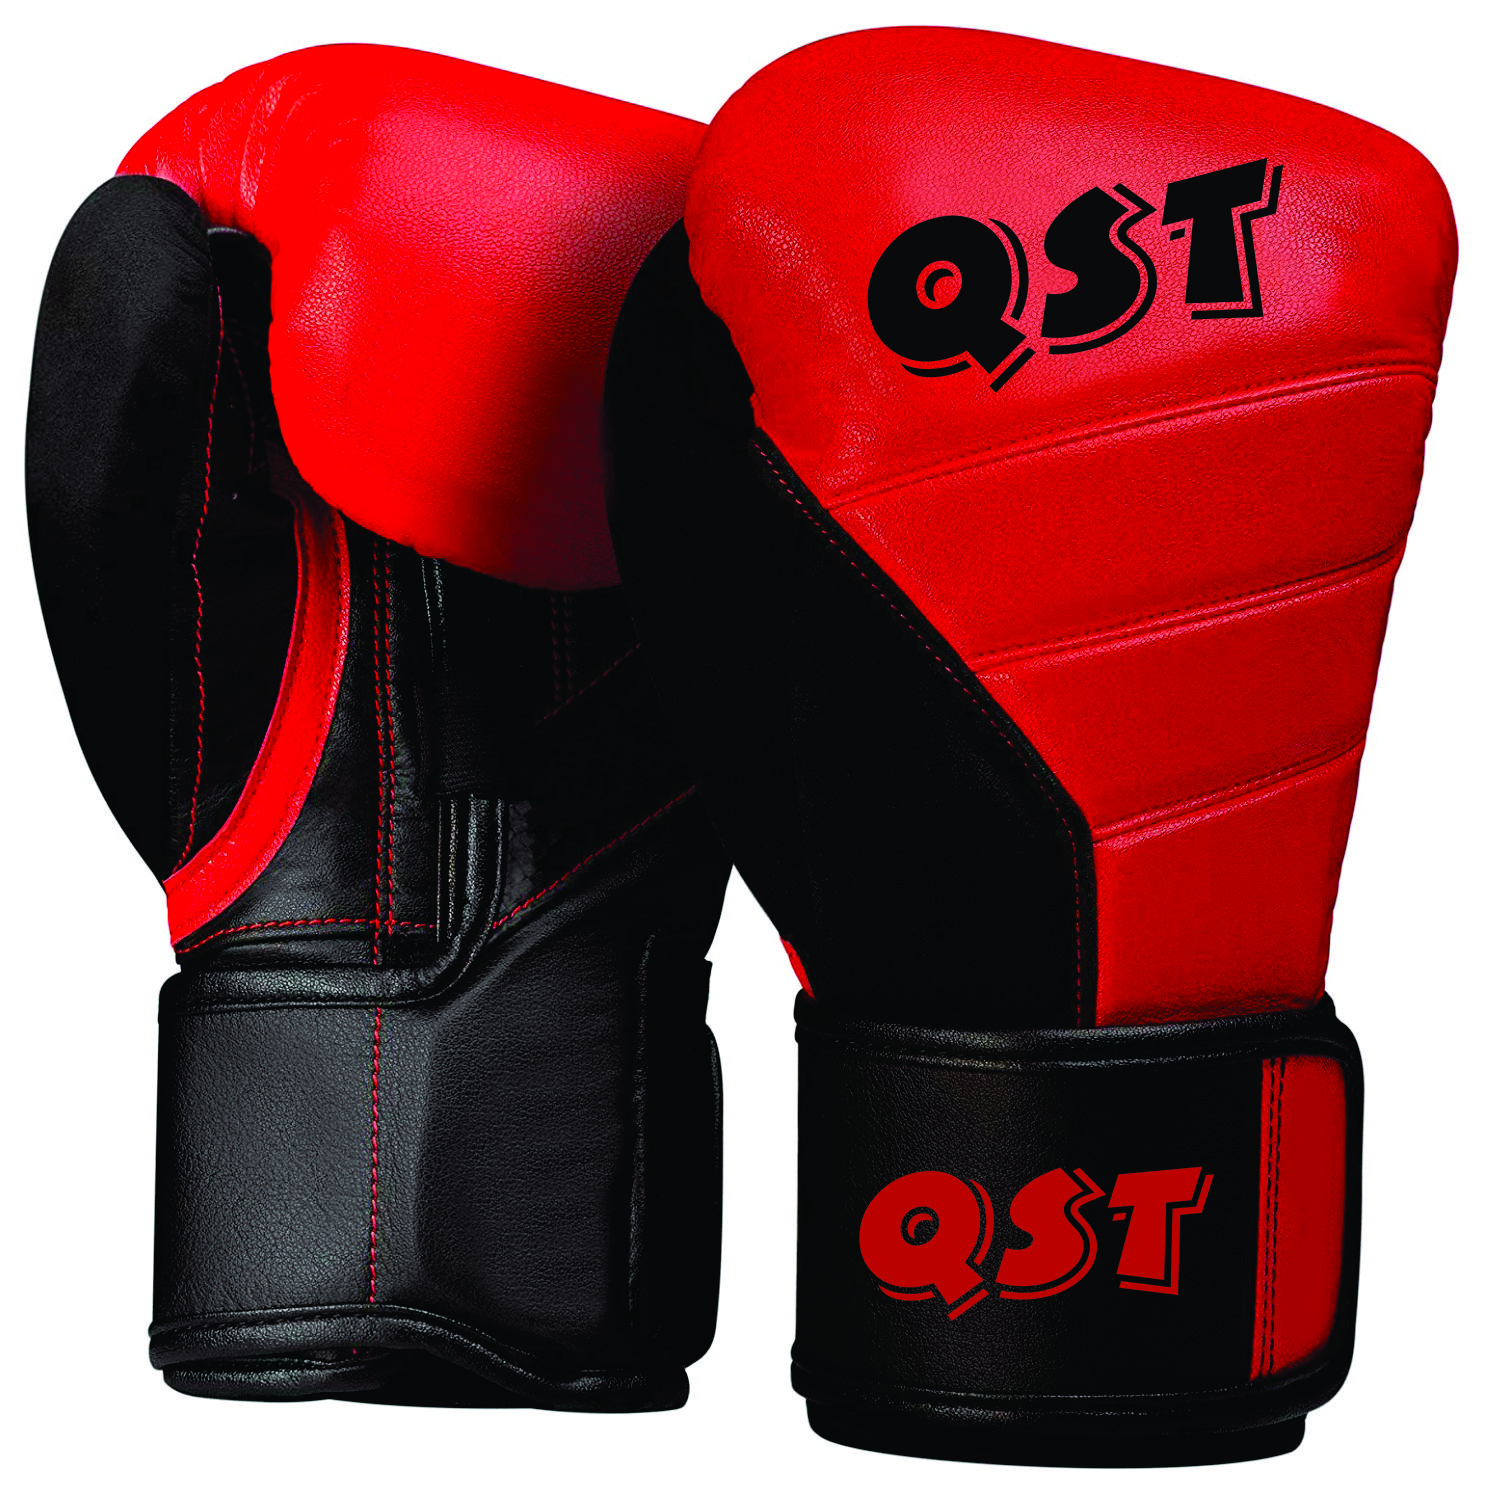 Training Boxing Gloves - PRG-2037